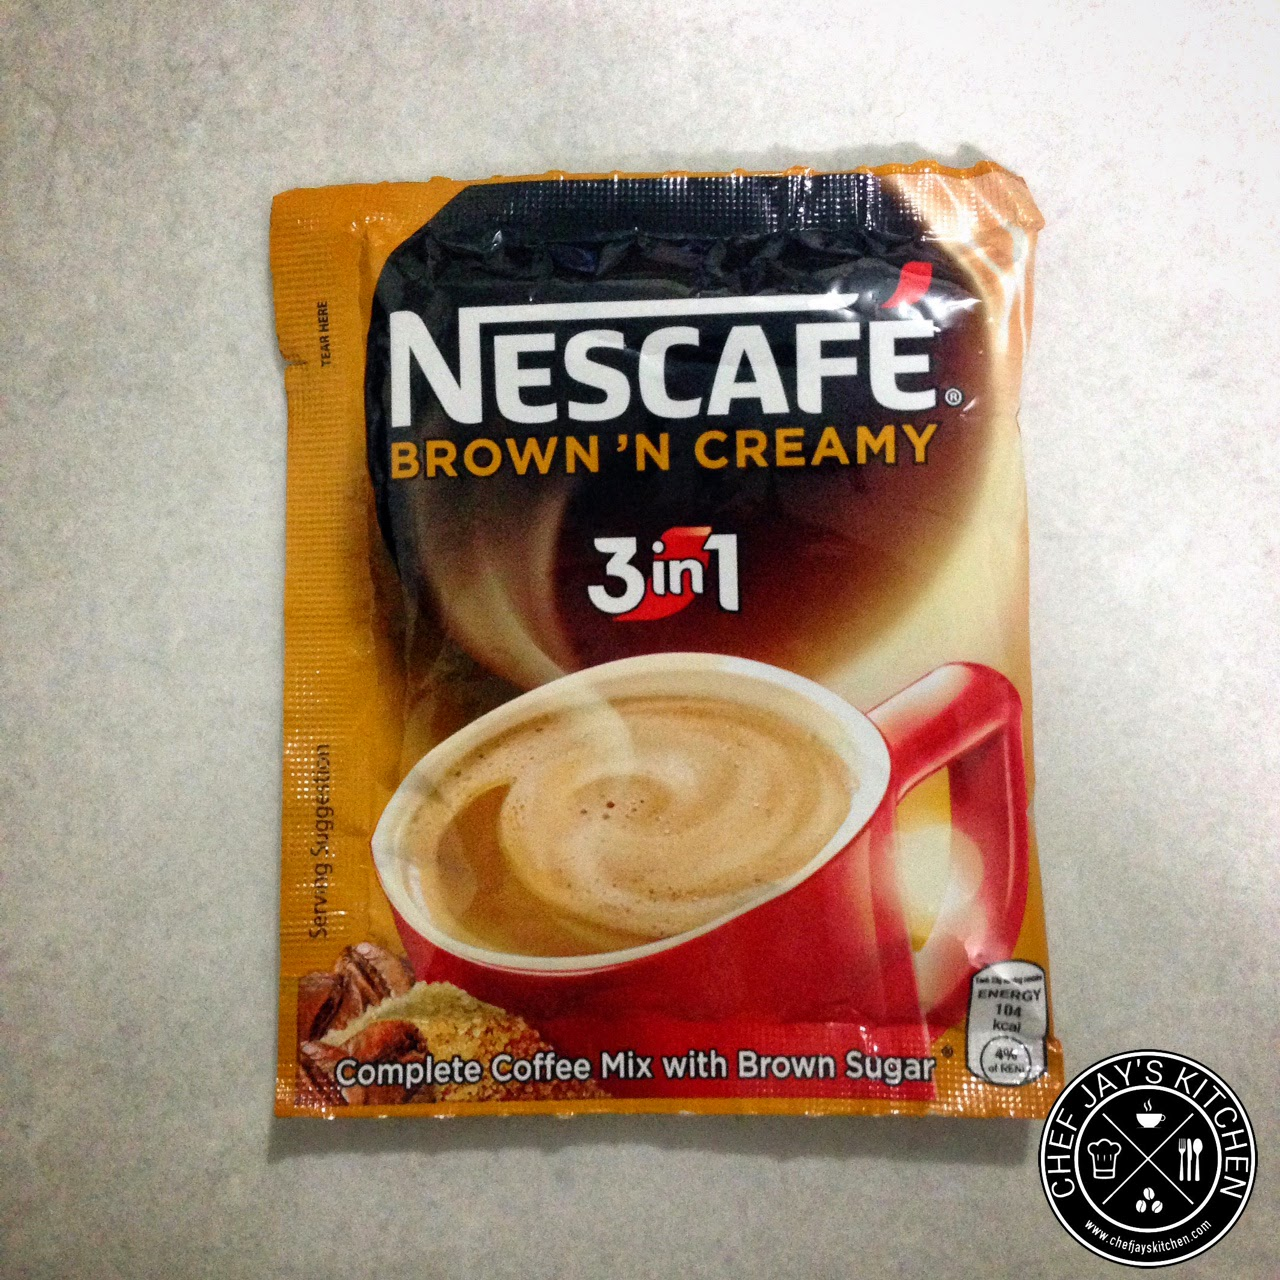 Brown Coffee Brands in the Philippines Review - Nescafe Brown 'N Creamy